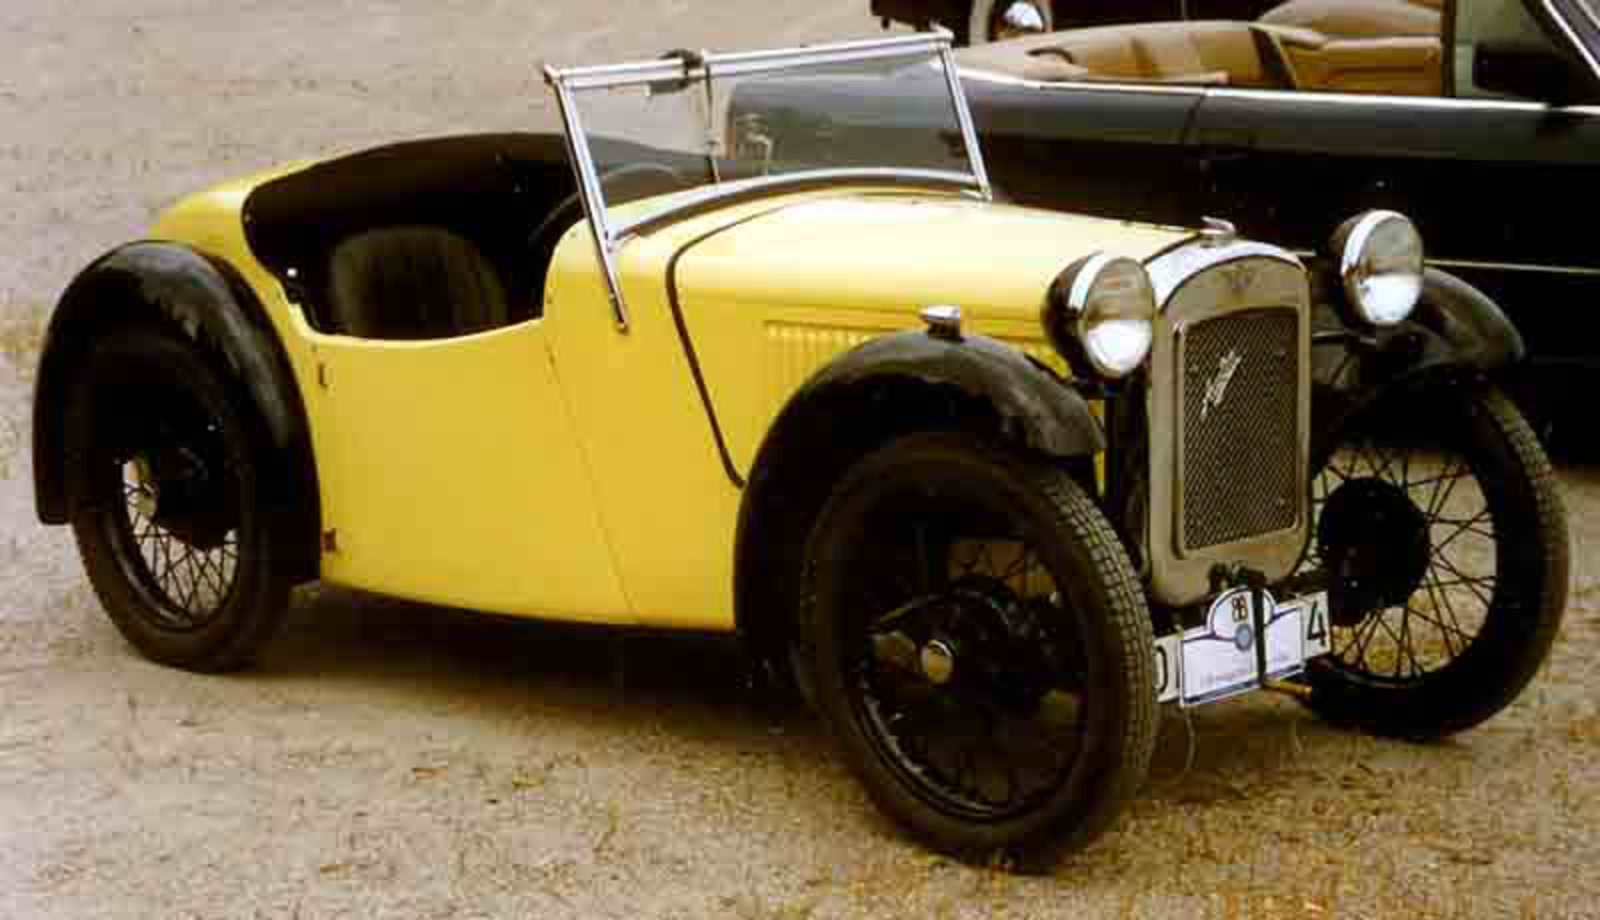 File:Austin Seven 65 Nippy 2-Seater Sport 1933.jpg - Wikimedia Commons